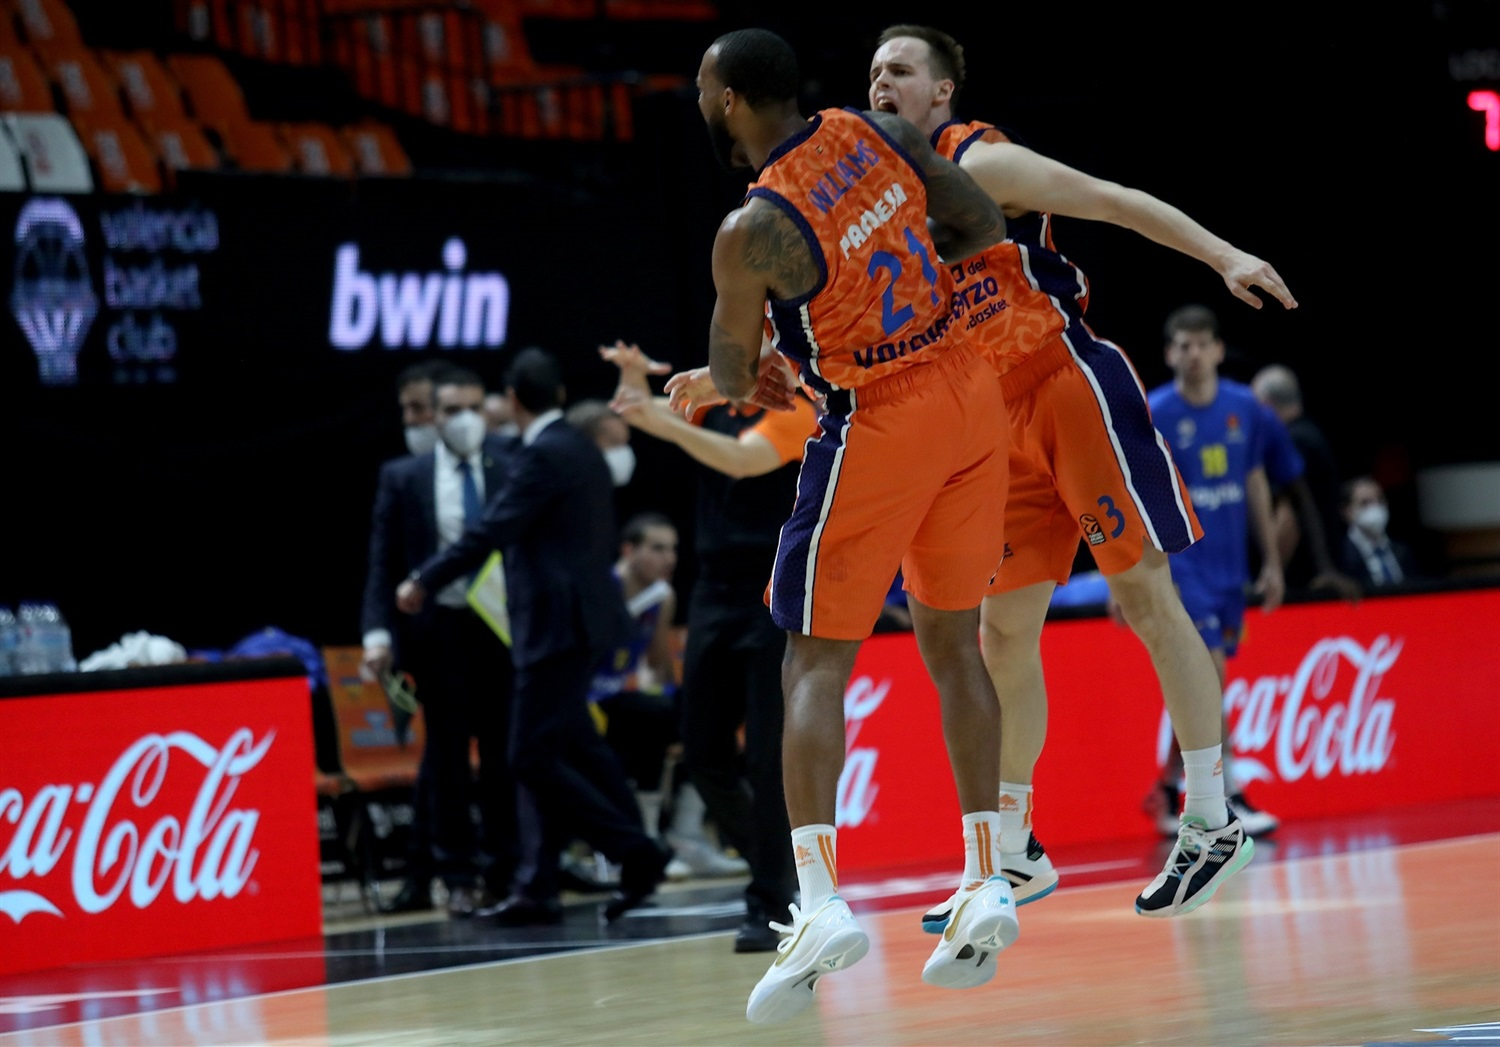 Valencia Basket celebrates - EB20